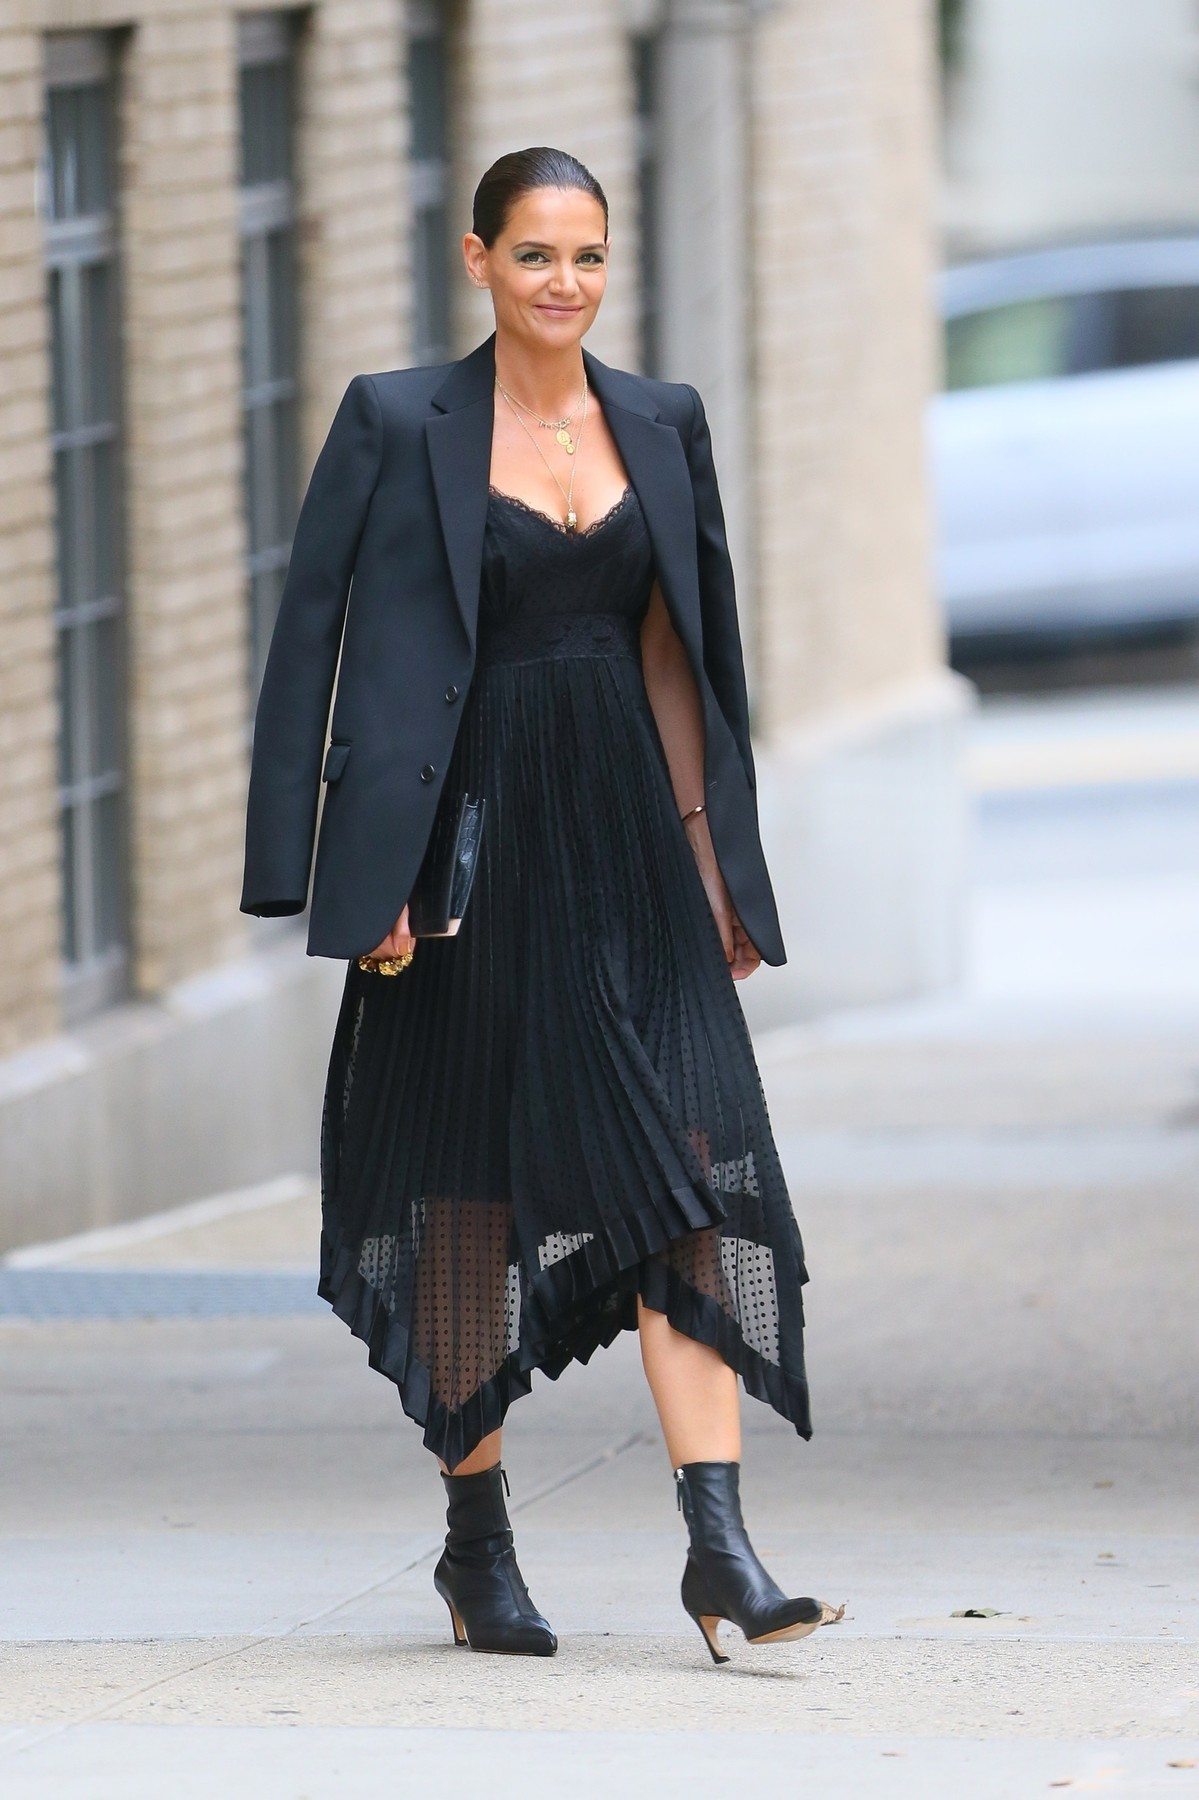 New York, NY  - Actress and model Katie Holmes is all prepped for a fashionable event at Zimmermann in NYC. The mother, actress, and model, leaves her apartment with natural-looking make-up accentuated with smokey eyeshadow.  BACKGRID USA 4 SEPTEMBER 2019,Image: 469176394, License: Rights-managed, Restrictions: , Model Release: no, Credit line: T.JACKSON / BACKGRID / Backgrid USA / Profimedia